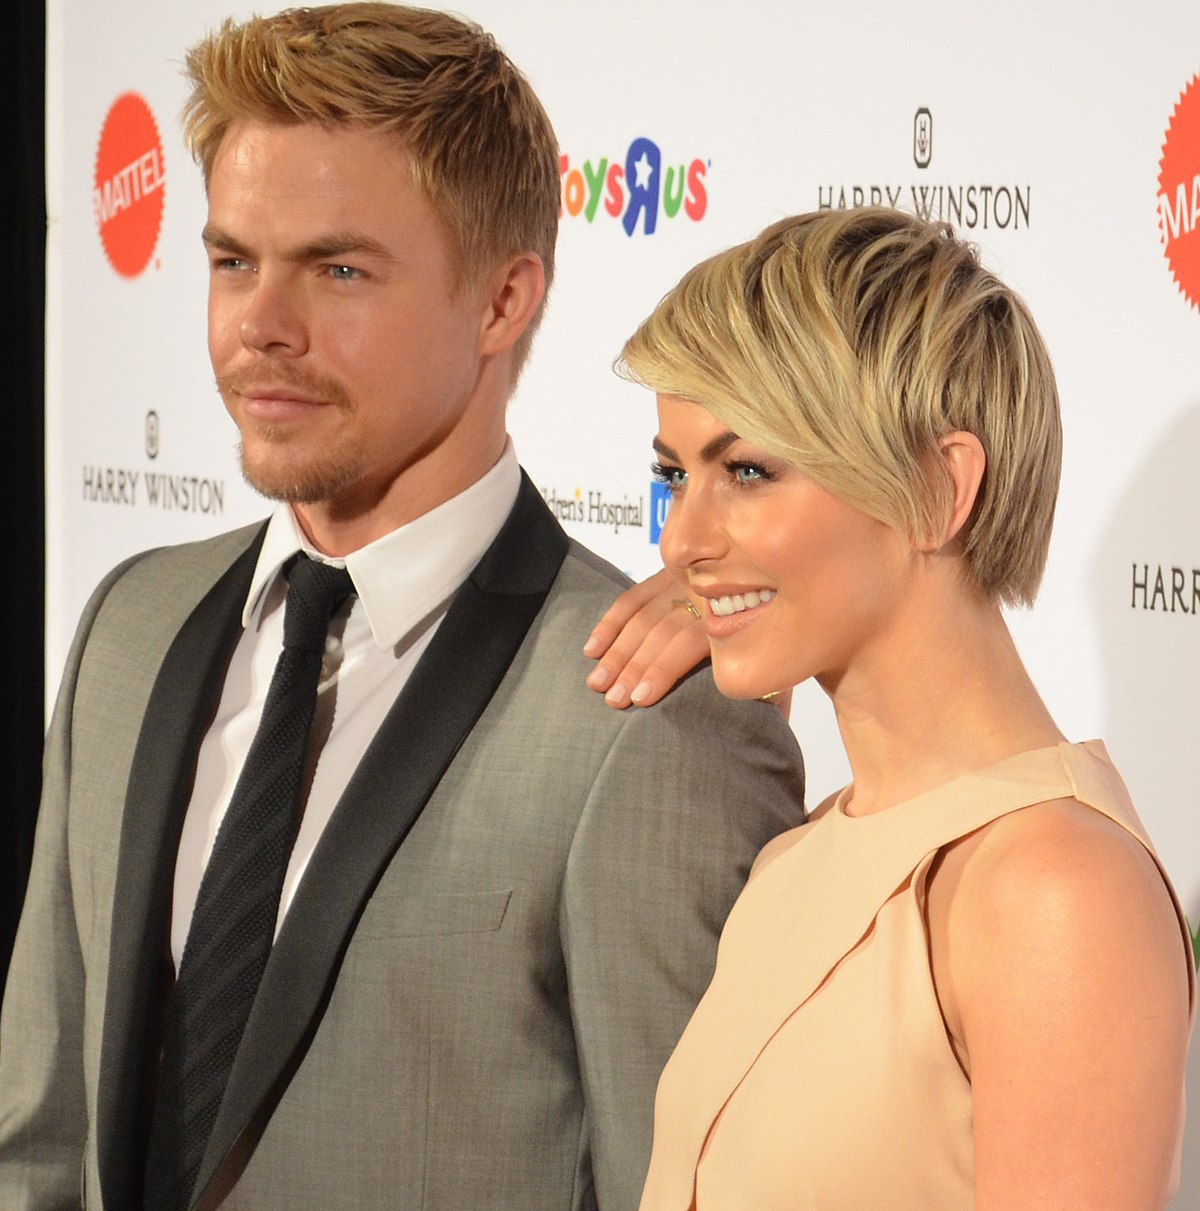 Derek And Julianne Hough Tour Dates